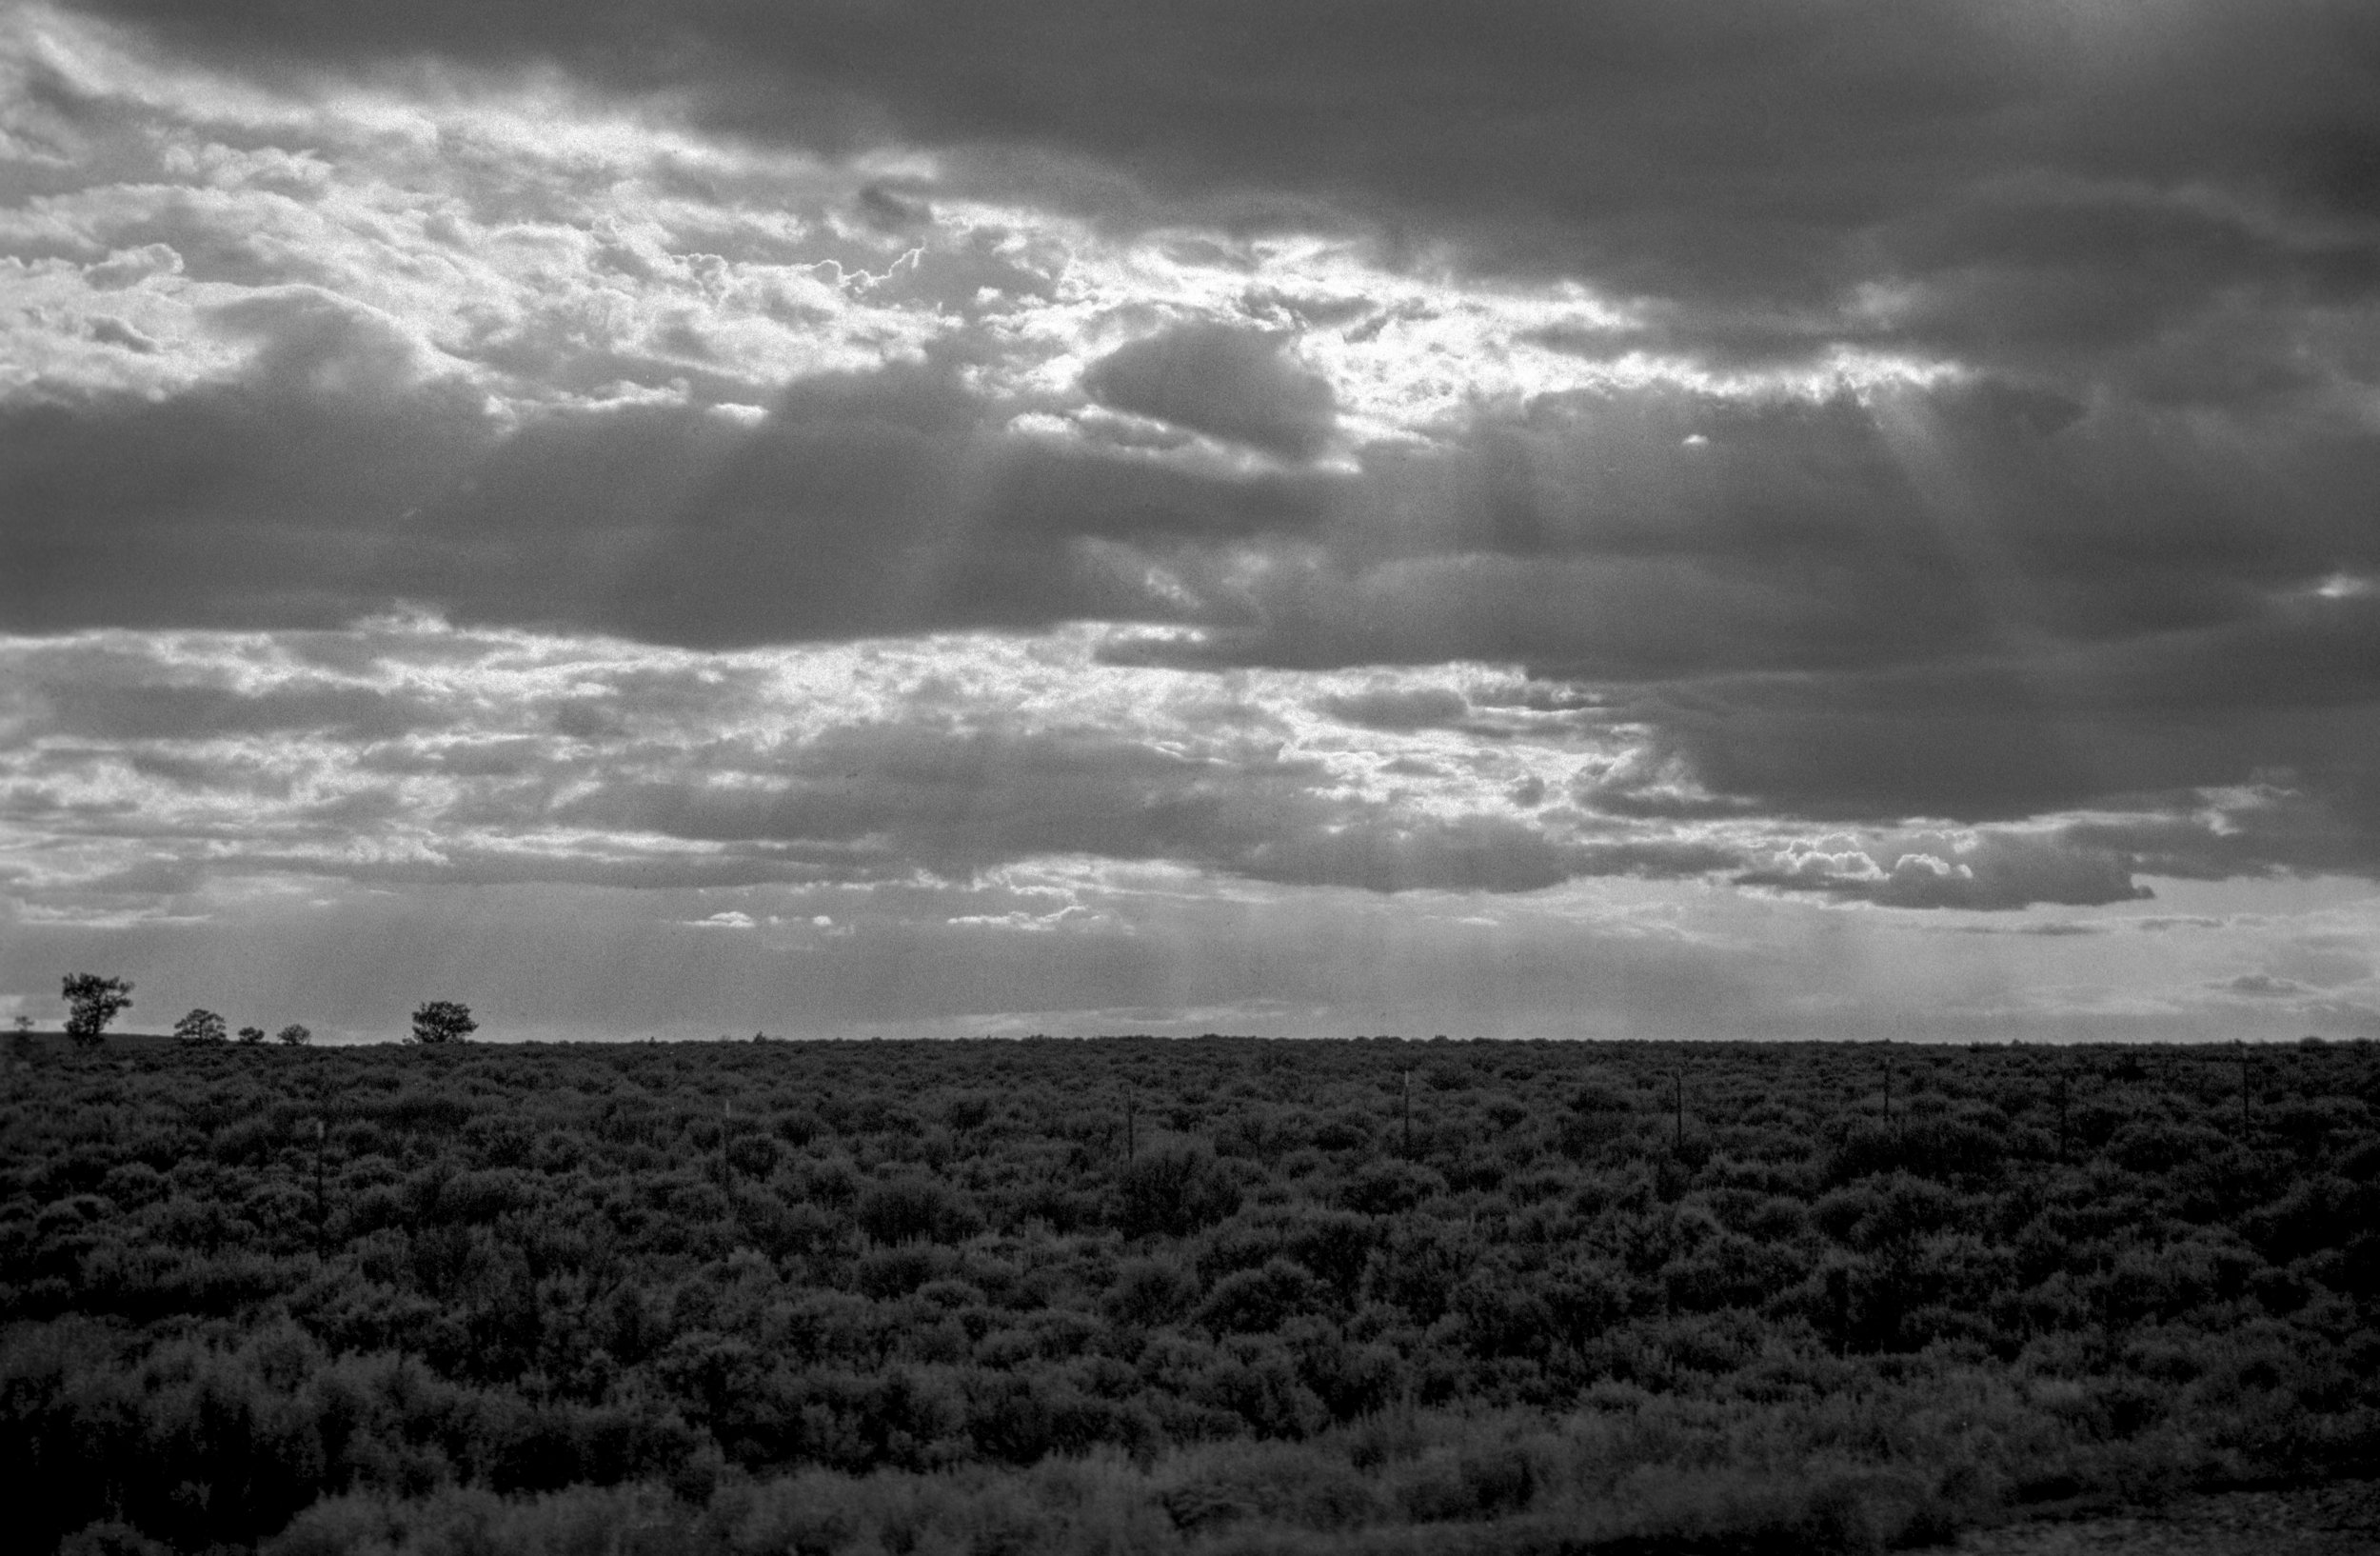 COLORADO_MOUNTAINS_B&W_1.JPG